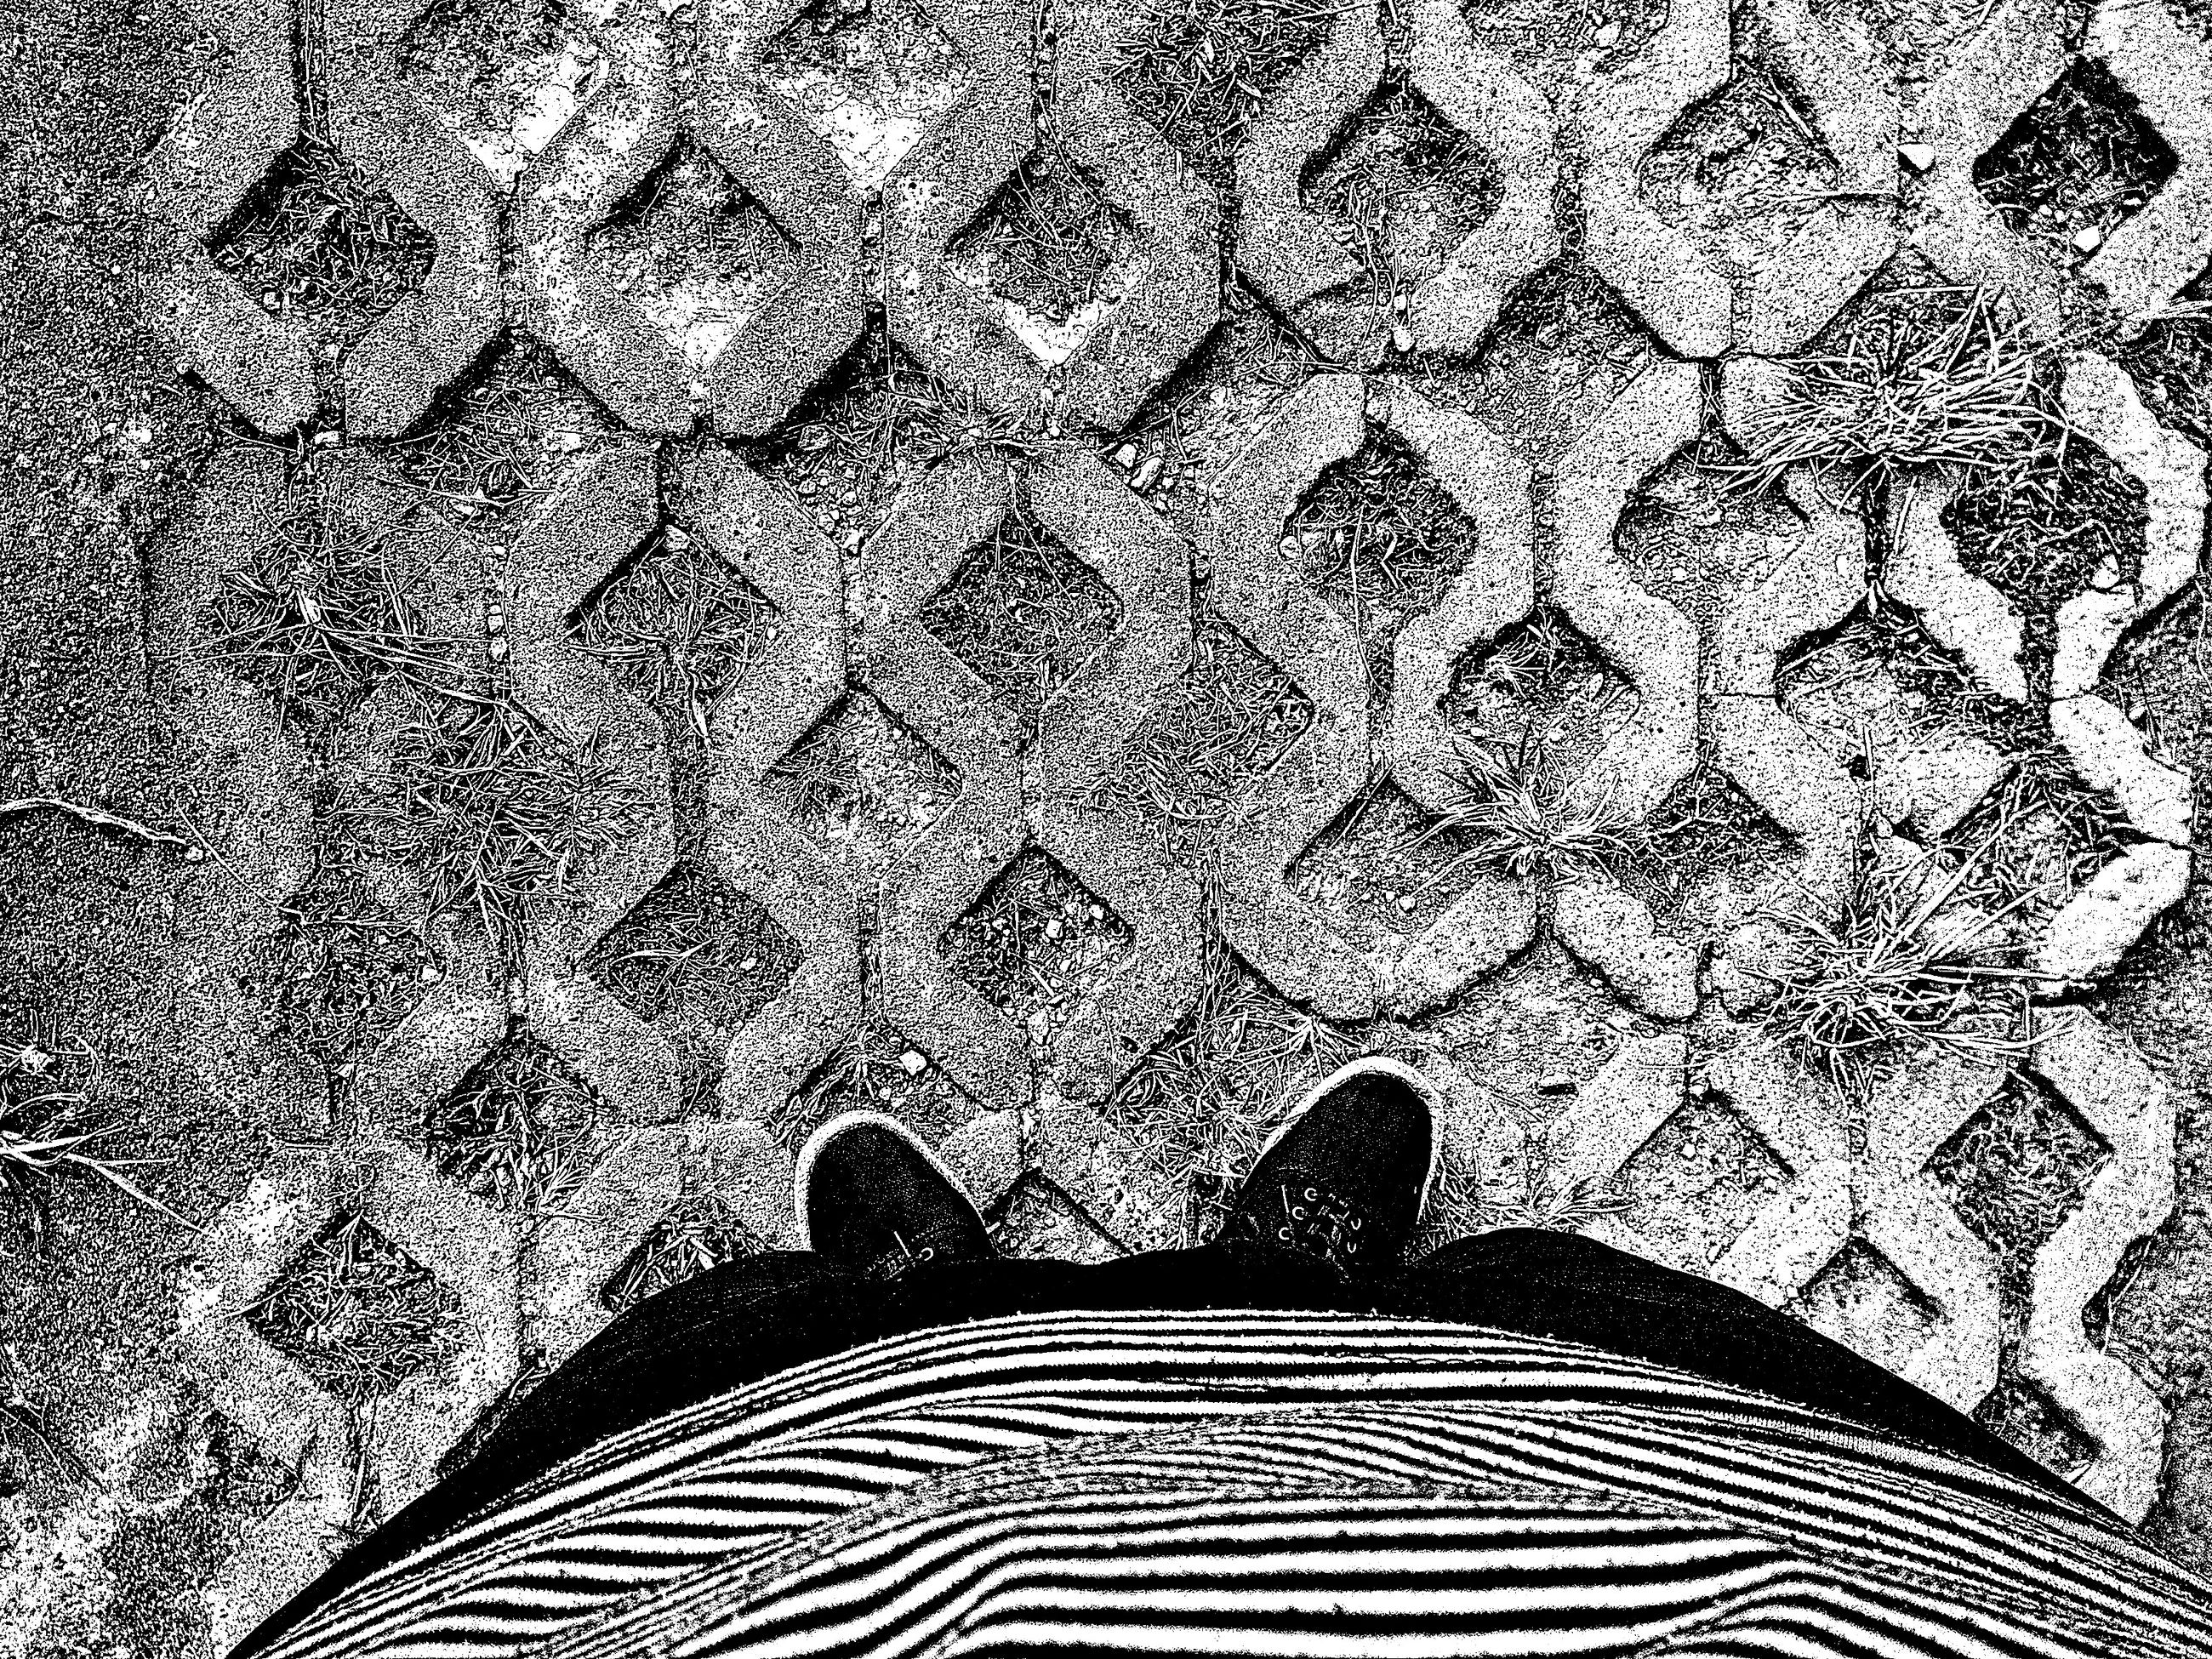 pattern, design, high angle view, full frame, shadow, sunlight, indoors, textured, day, backgrounds, wall - building feature, steps, repetition, no people, low angle view, cobblestone, floral pattern, nature